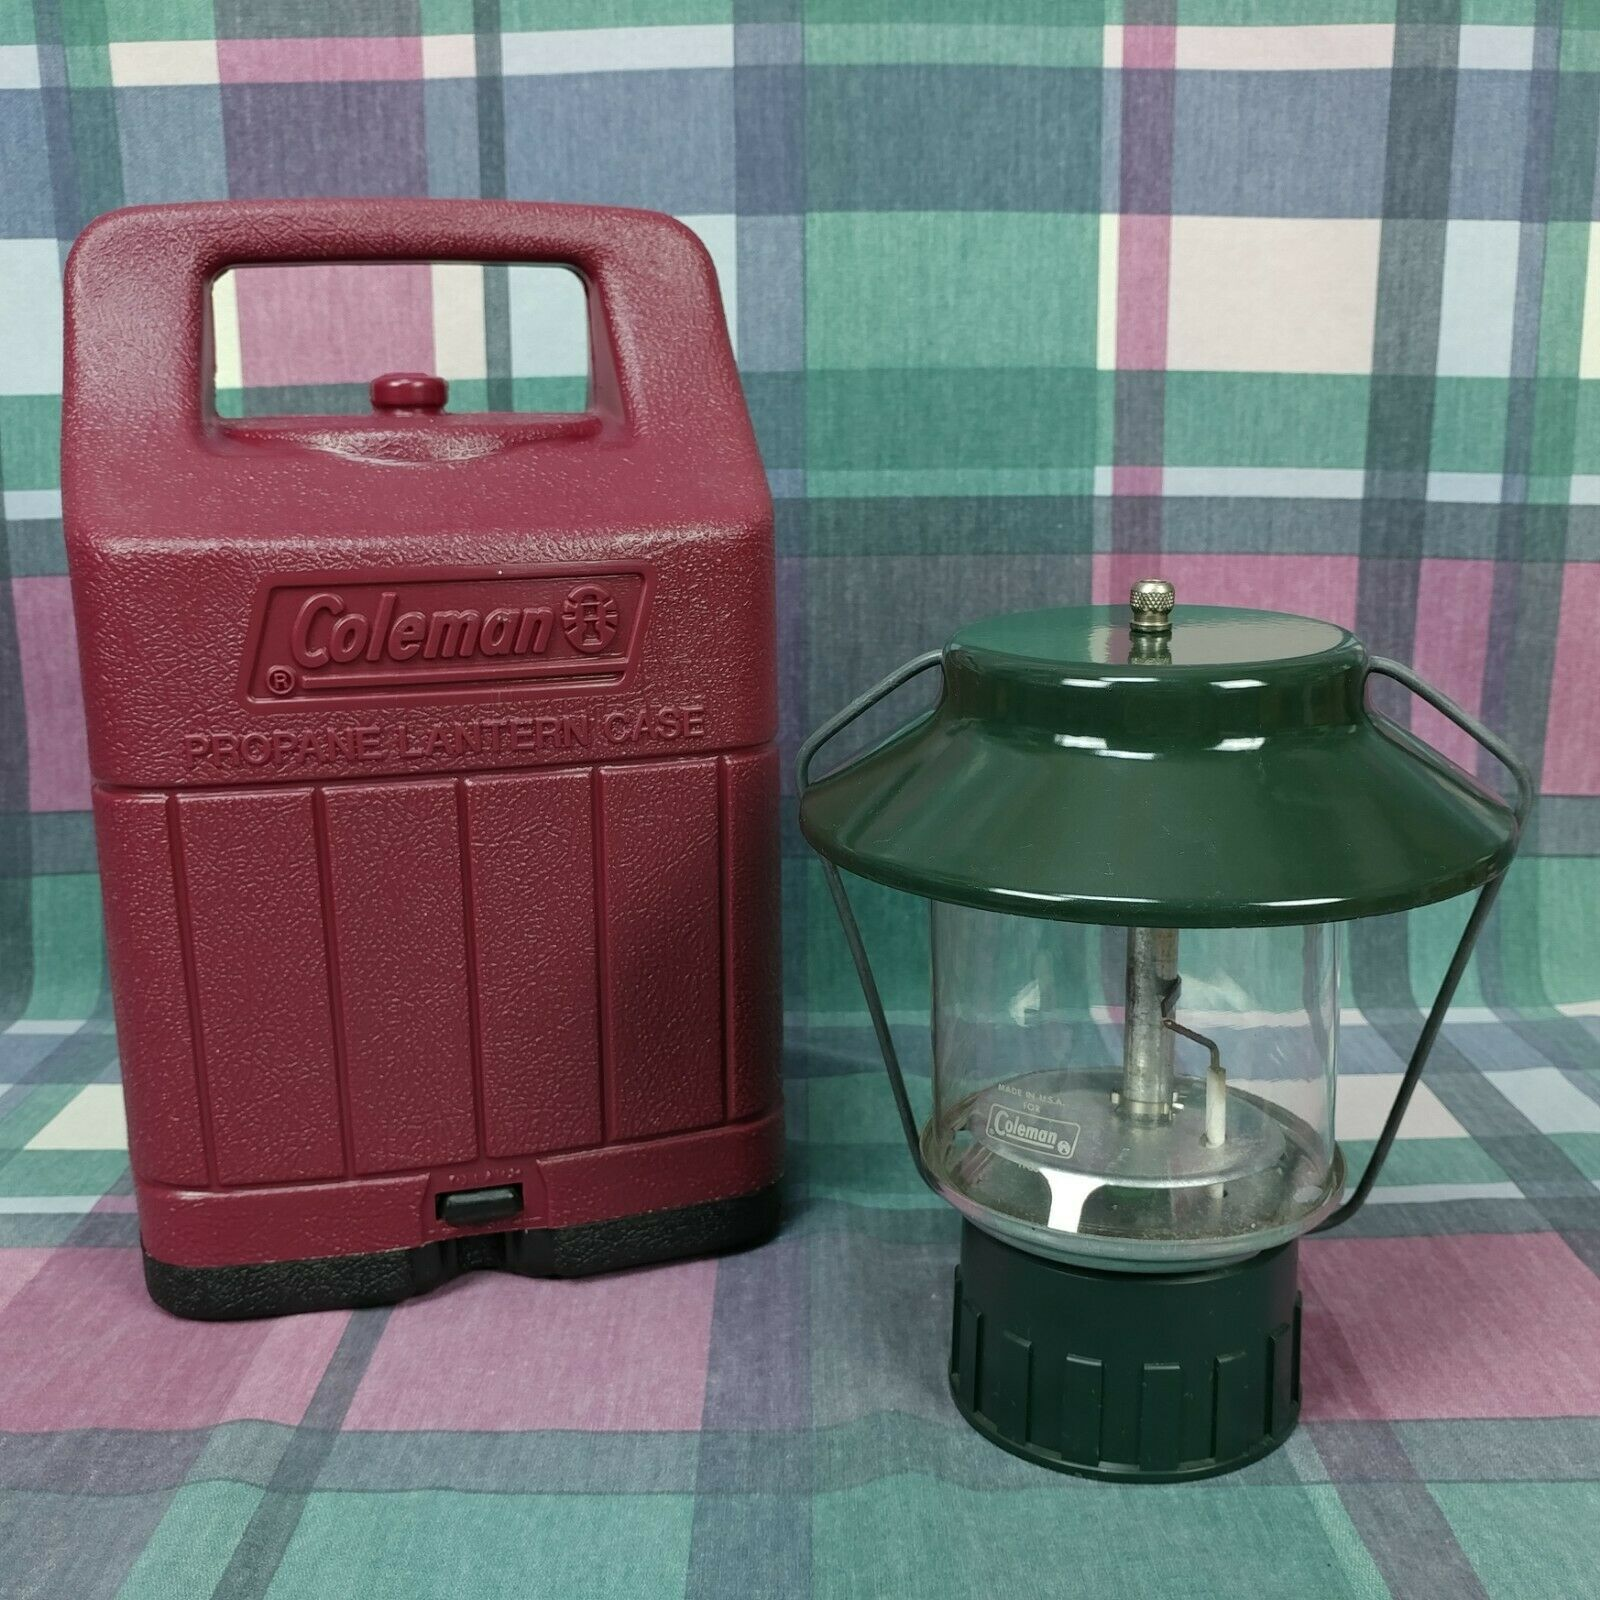 COLEMAN Propane Lantern with Red Carrying Case 2 Mantle H-88 USA Camping Light